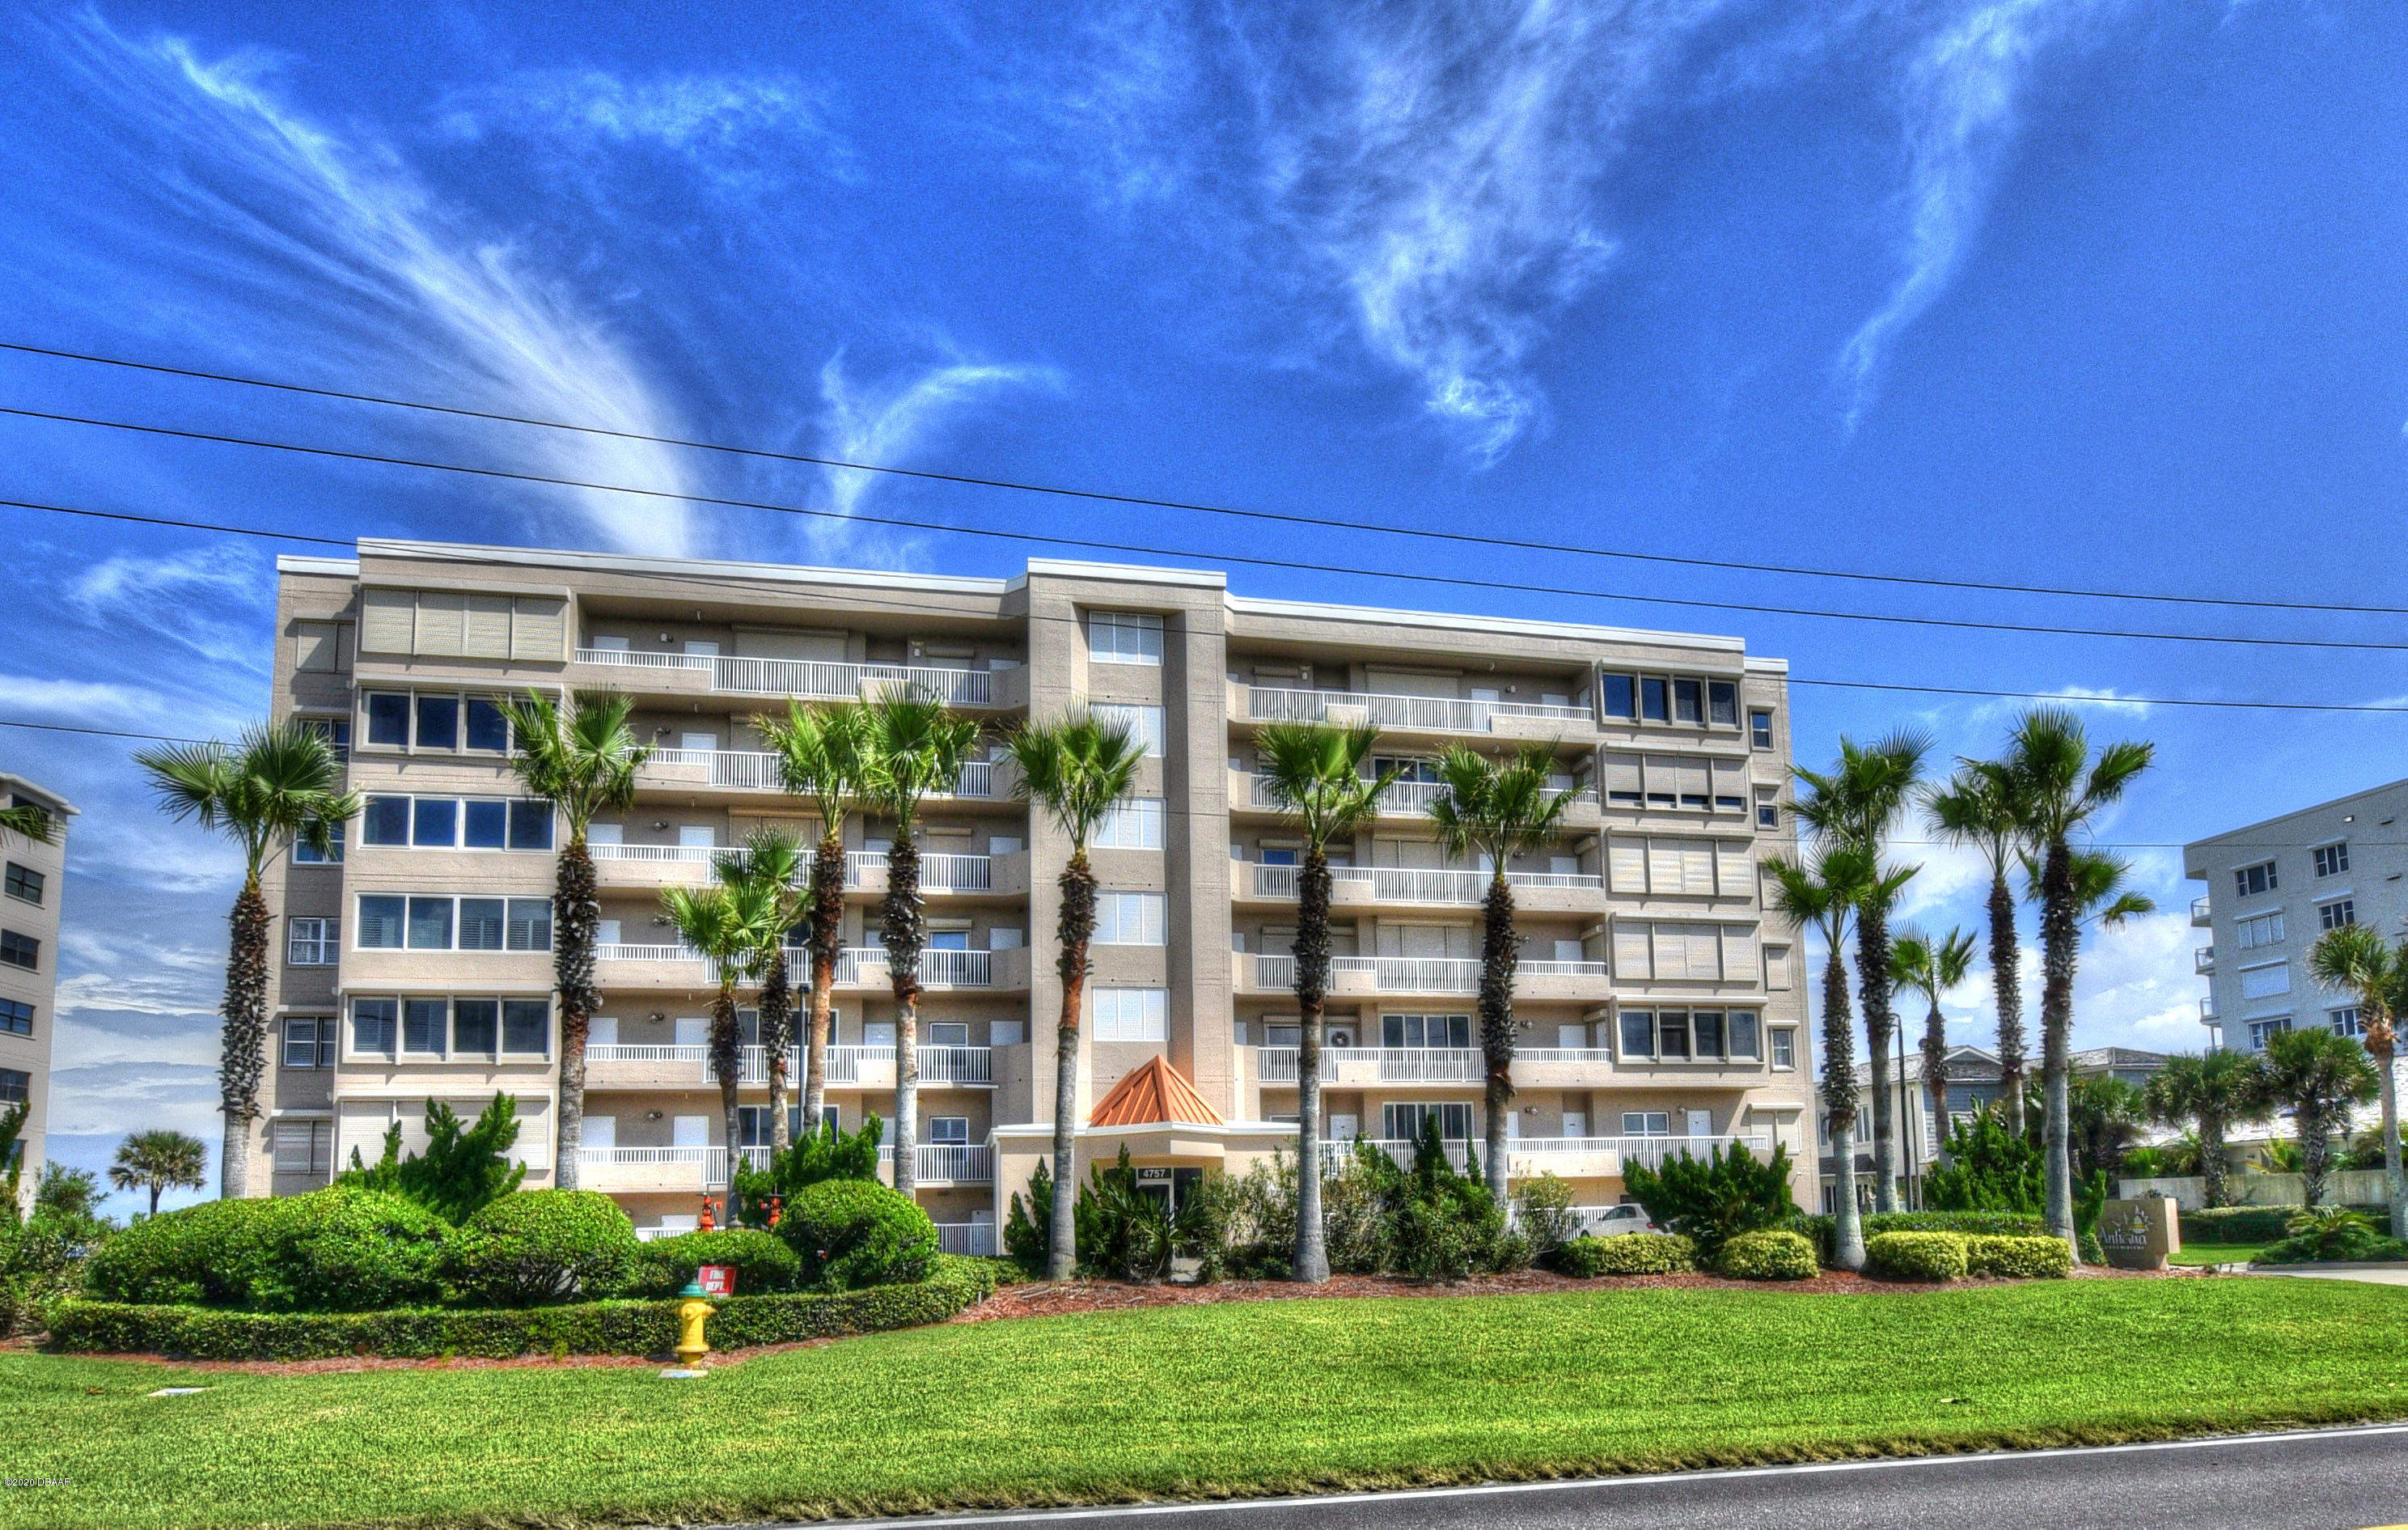 Photo of 4757 S Atlantic Avenue #703, Ponce Inlet, FL 32127